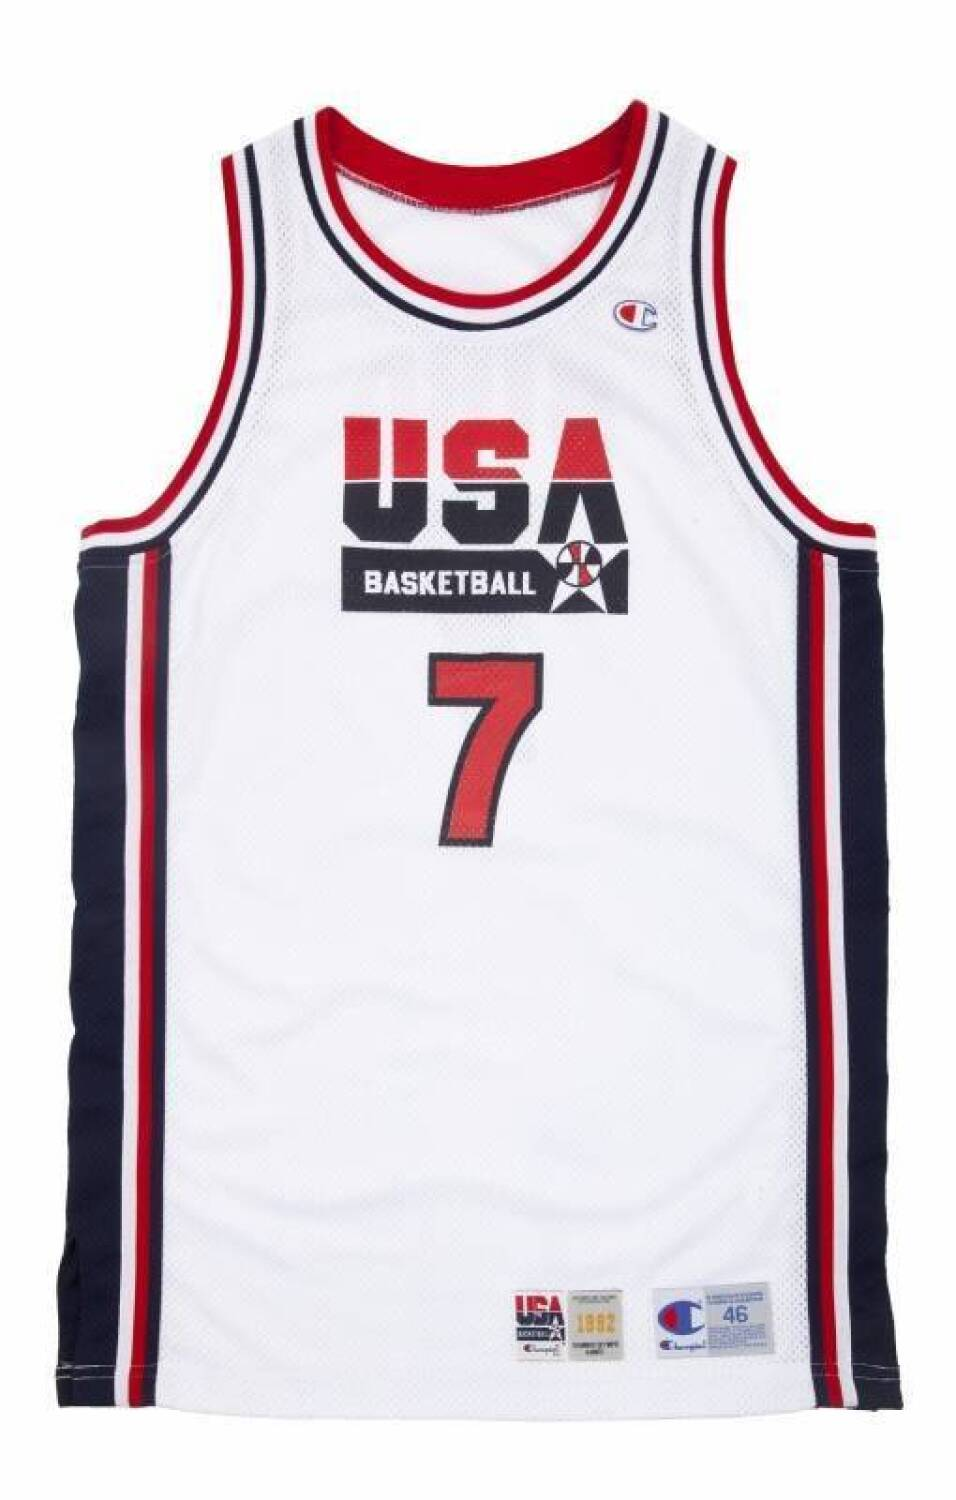 4dc4968518a1 Lot 40 of 480  LARRY BIRD 1992 OLYMPICS GAME WORN USA BASKETBALL JERSEY